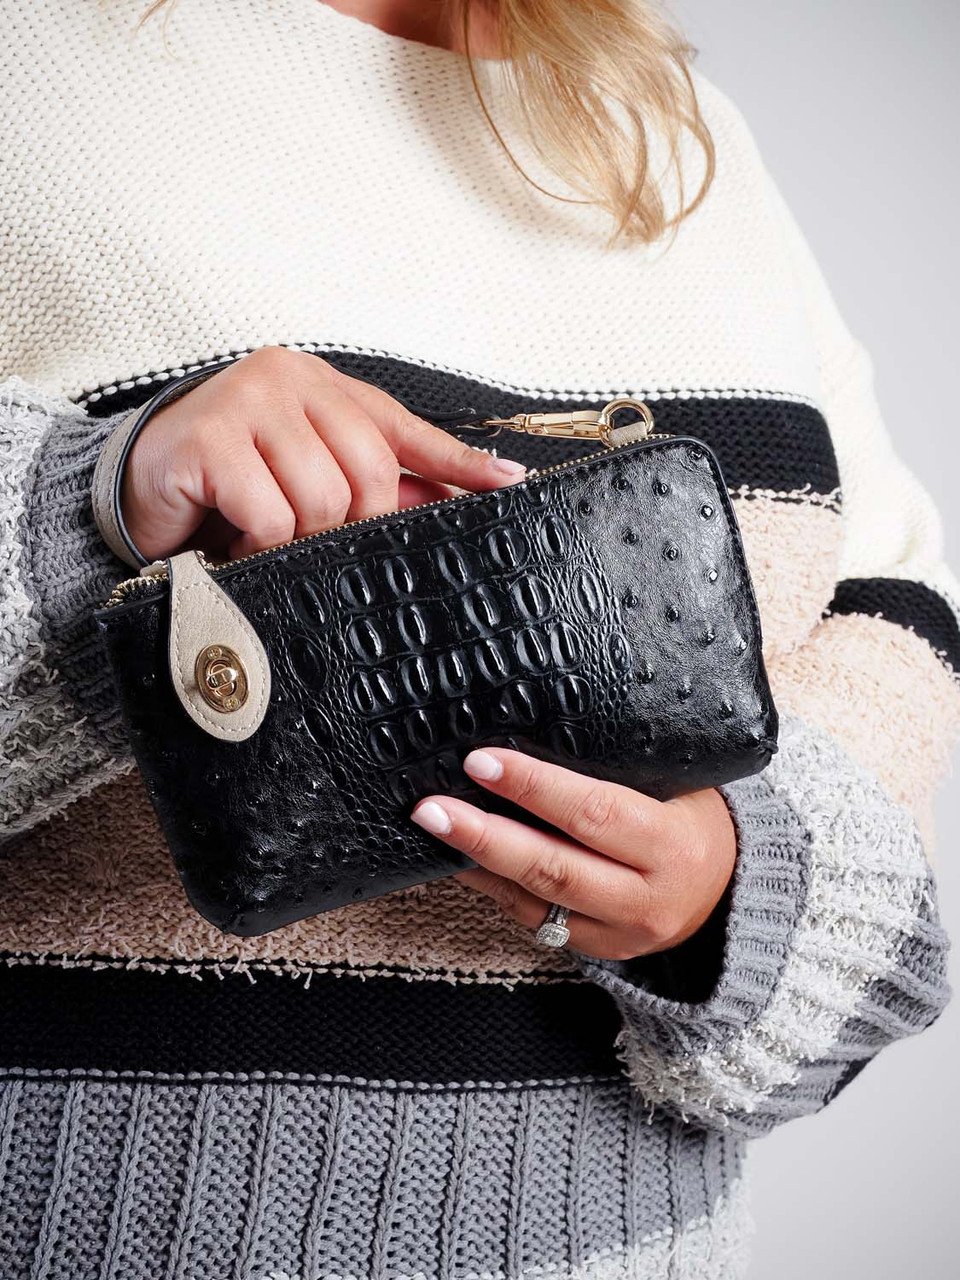 kendall crossbody wristlet in black and khaki jen and co